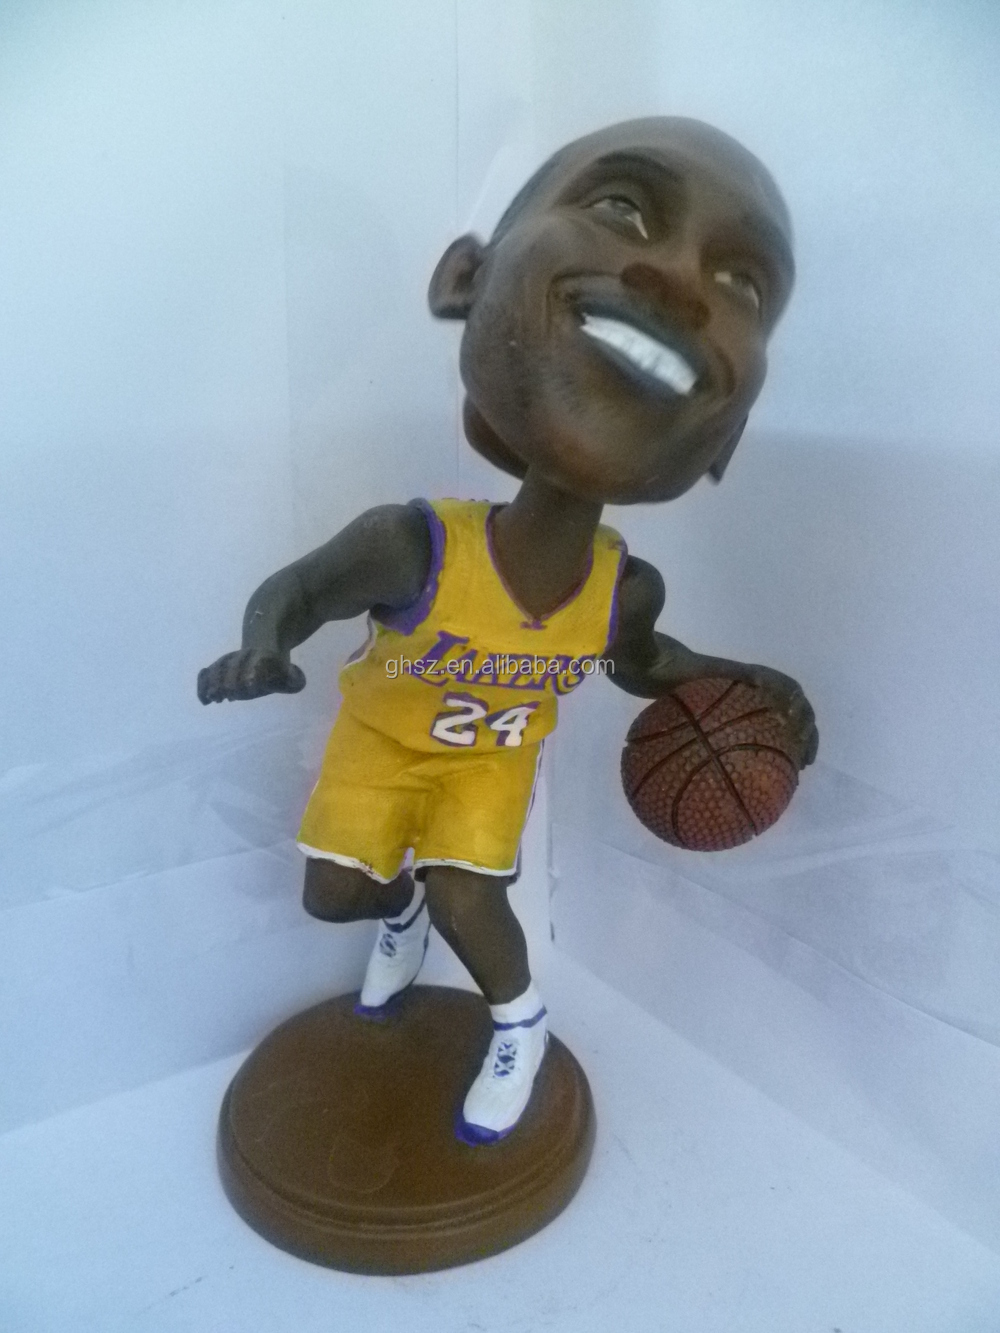 Guohao NBA player figure,basketball figure,sports figurine